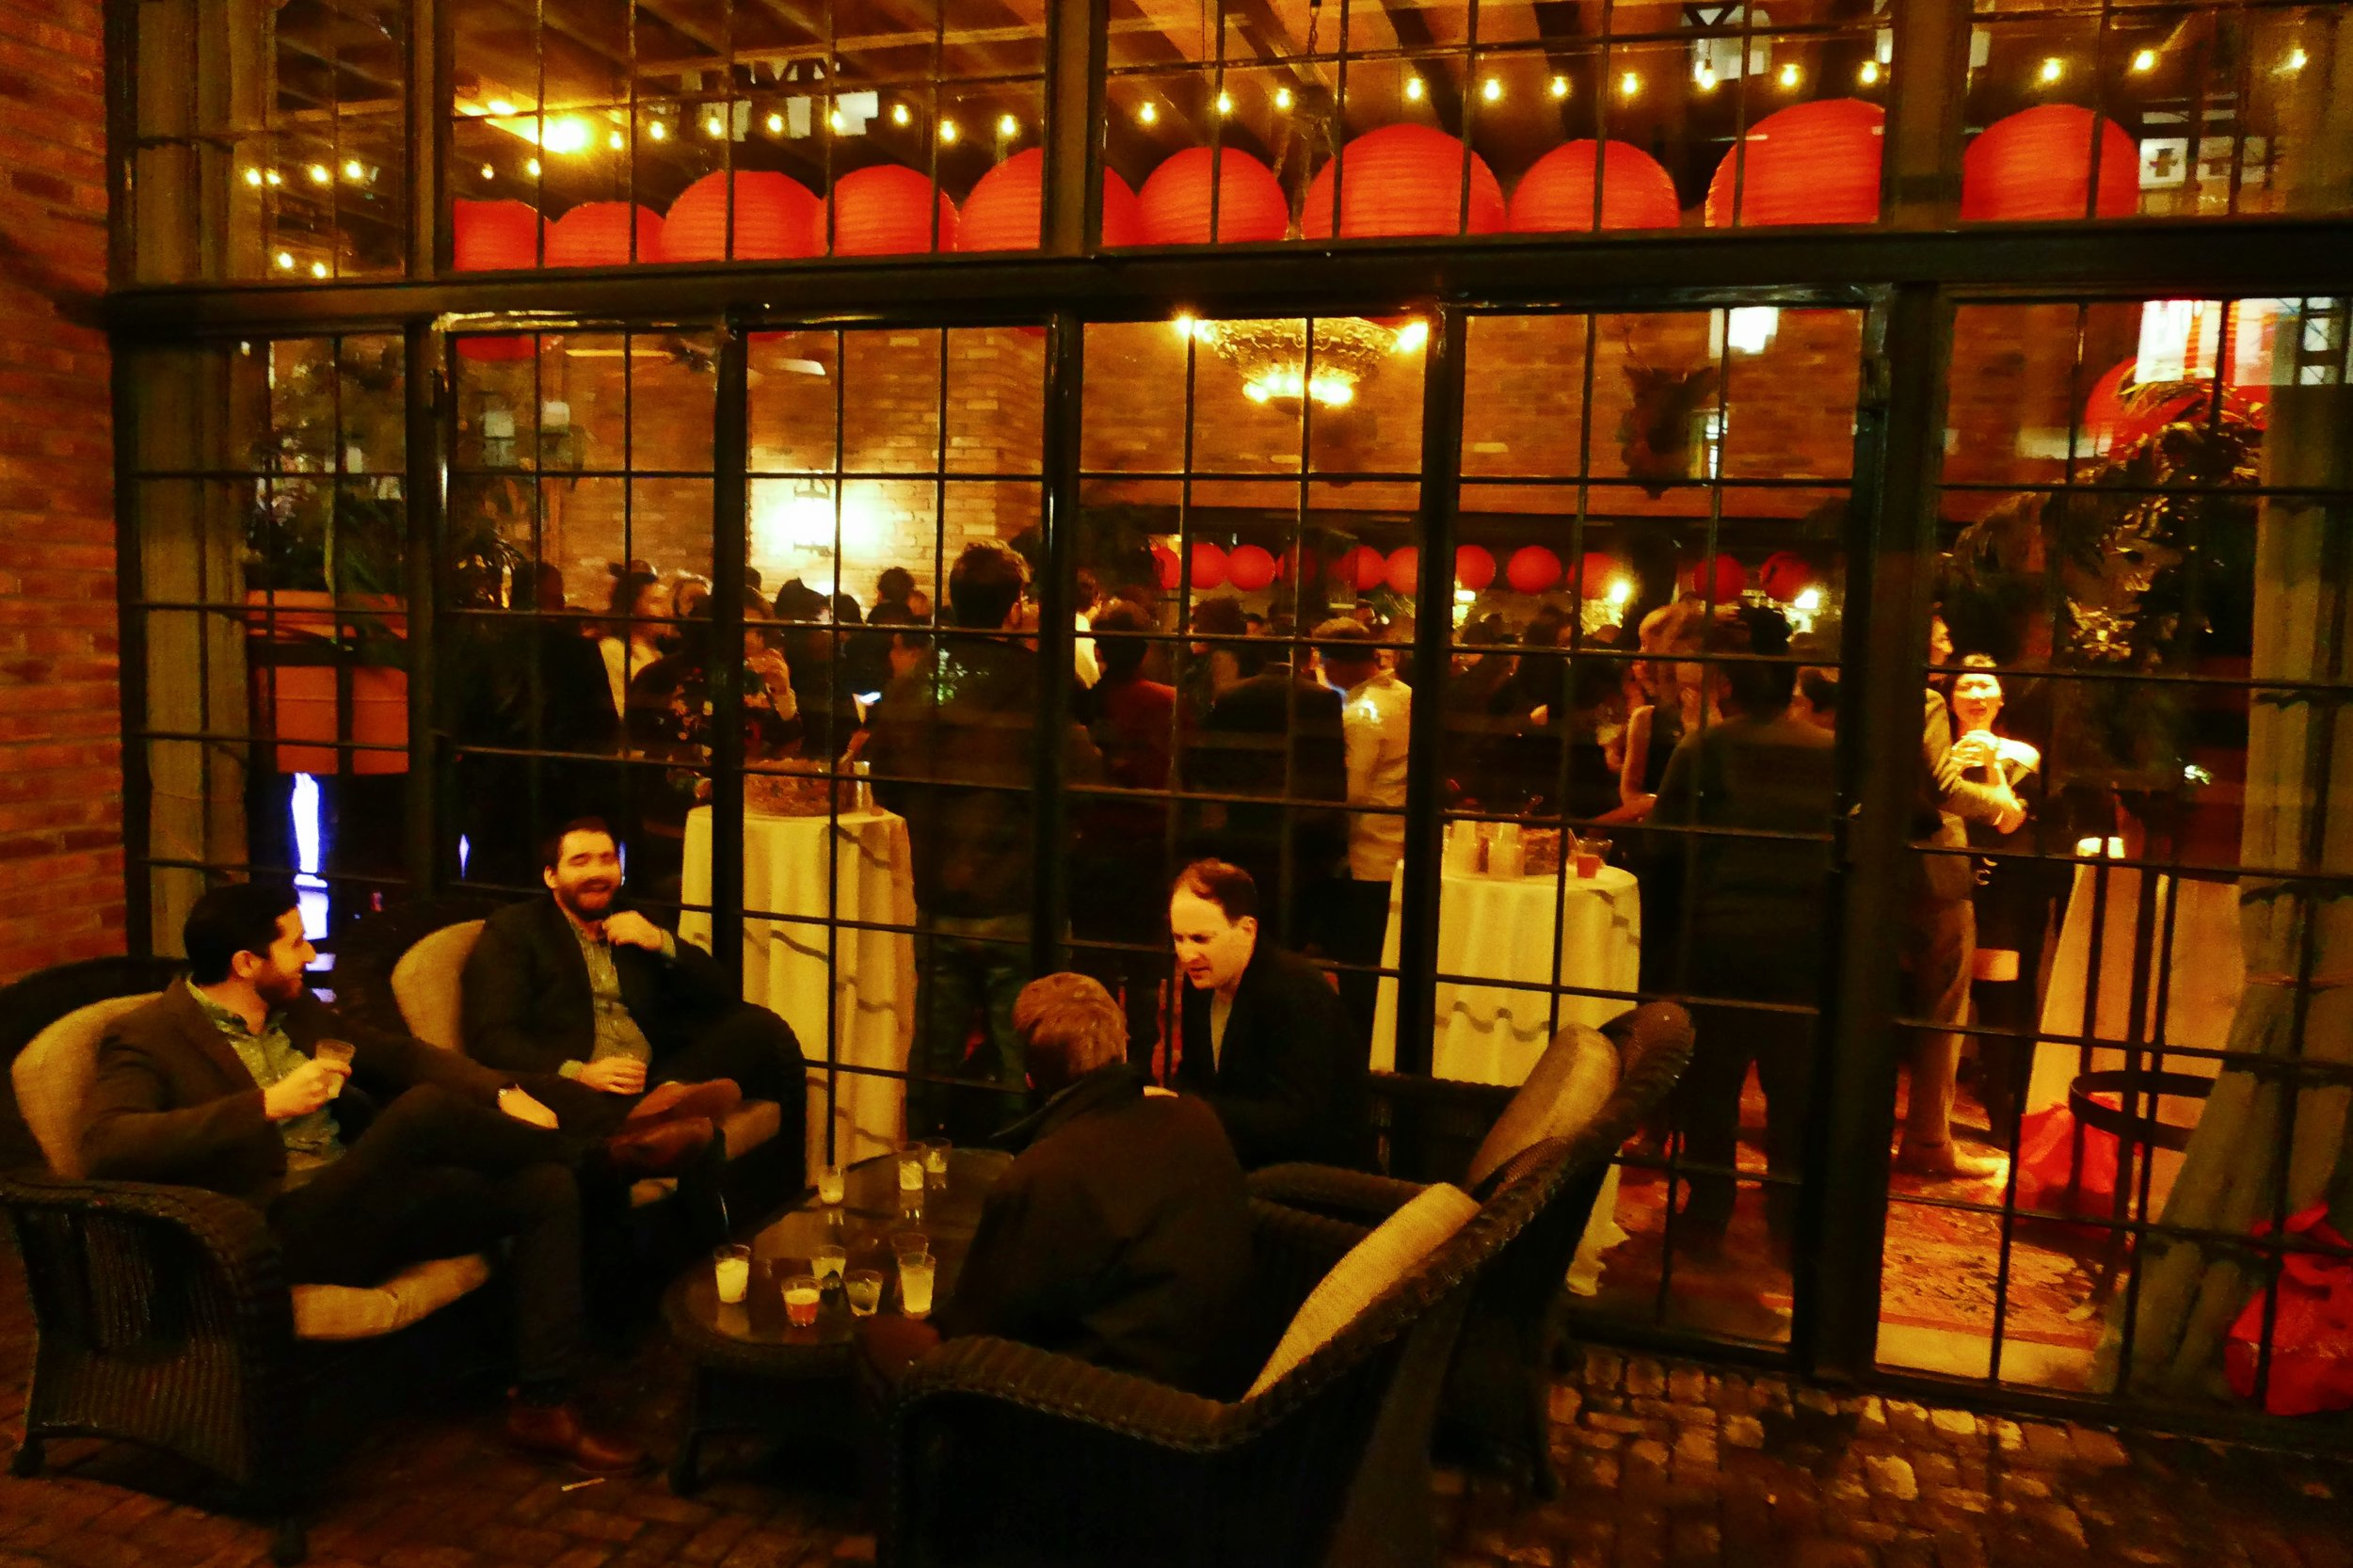 Guests enjoying cocktails on the terrace of The Bowery Hotel.